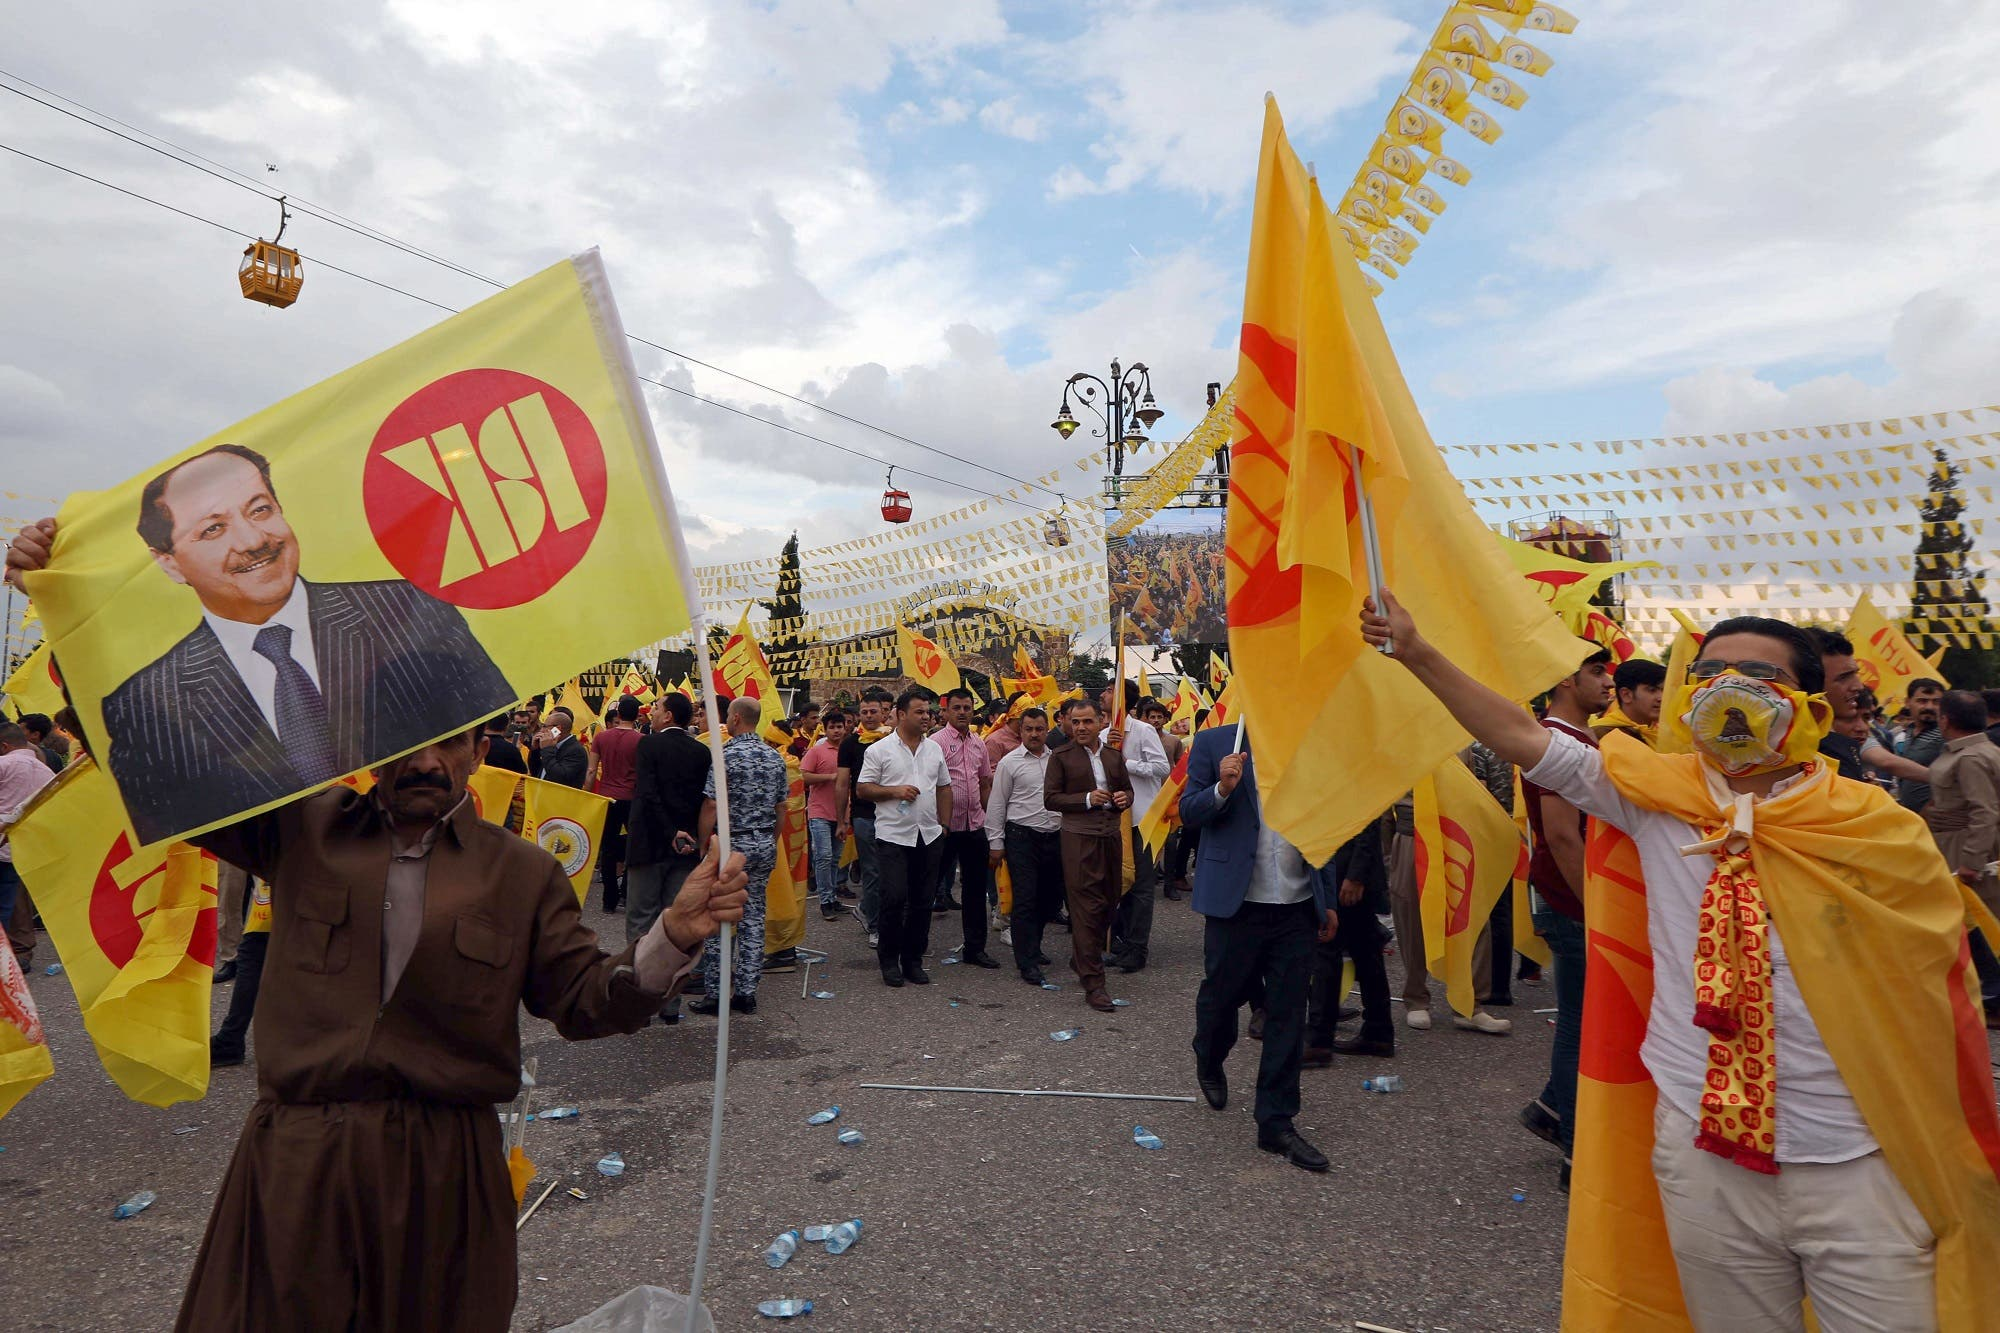 Iraqi Kurds wave flags as they attend an electoral rally for the Kurdistan Democratic Party (KDP) in Erbil on May 10, 2018. (AFP)